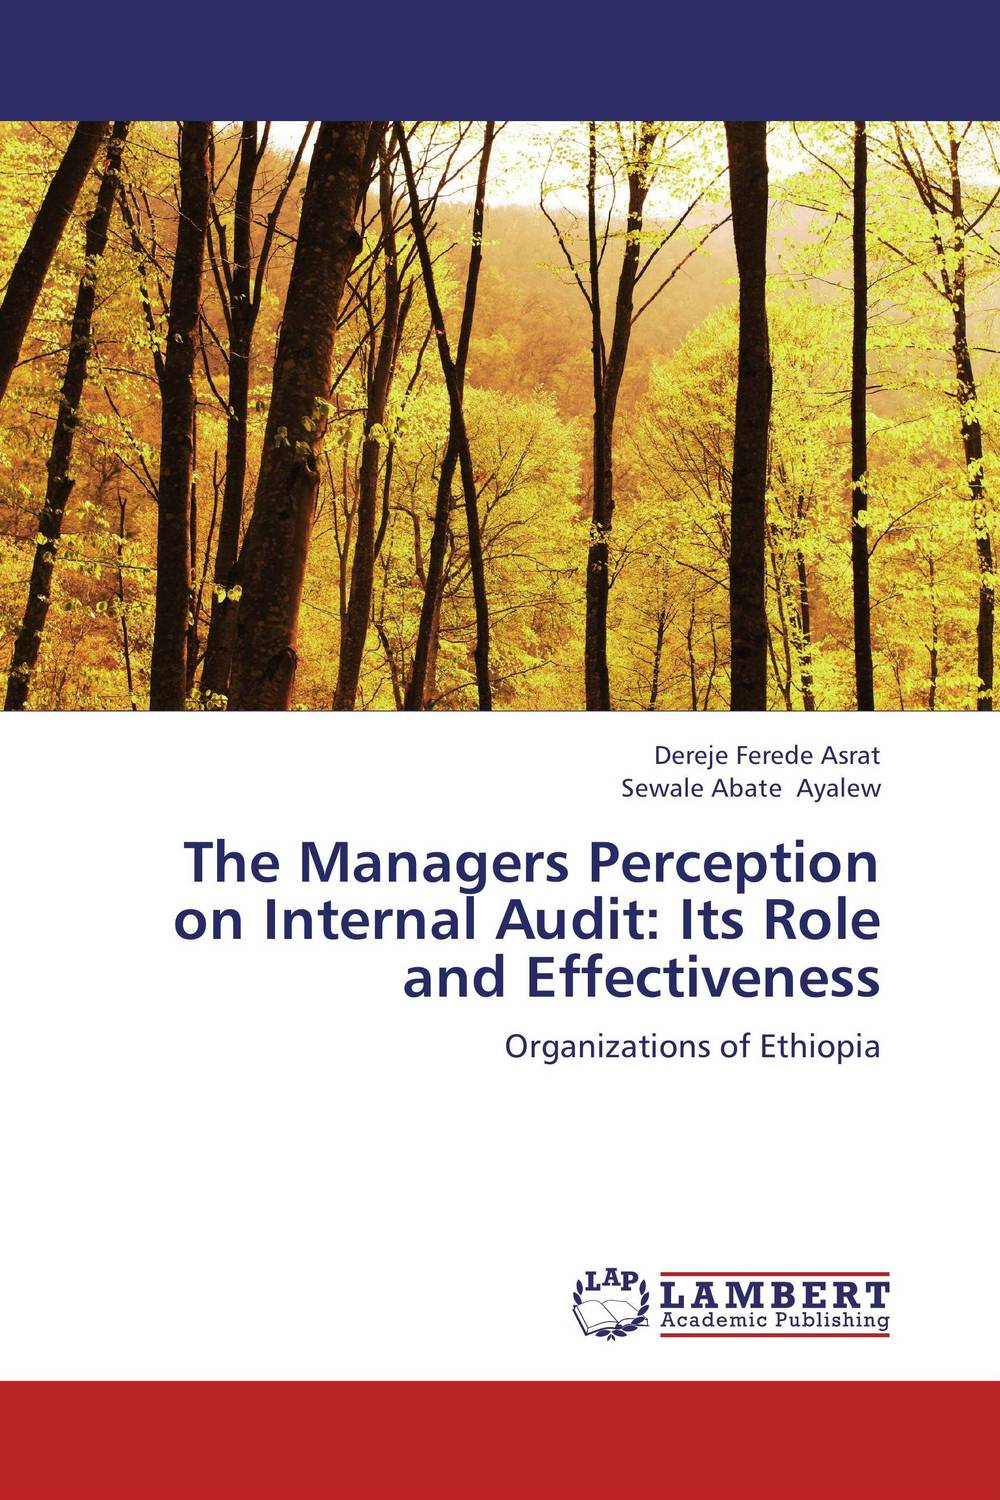 The Managers Perception on Internal Audit: Its Role and Effectiveness